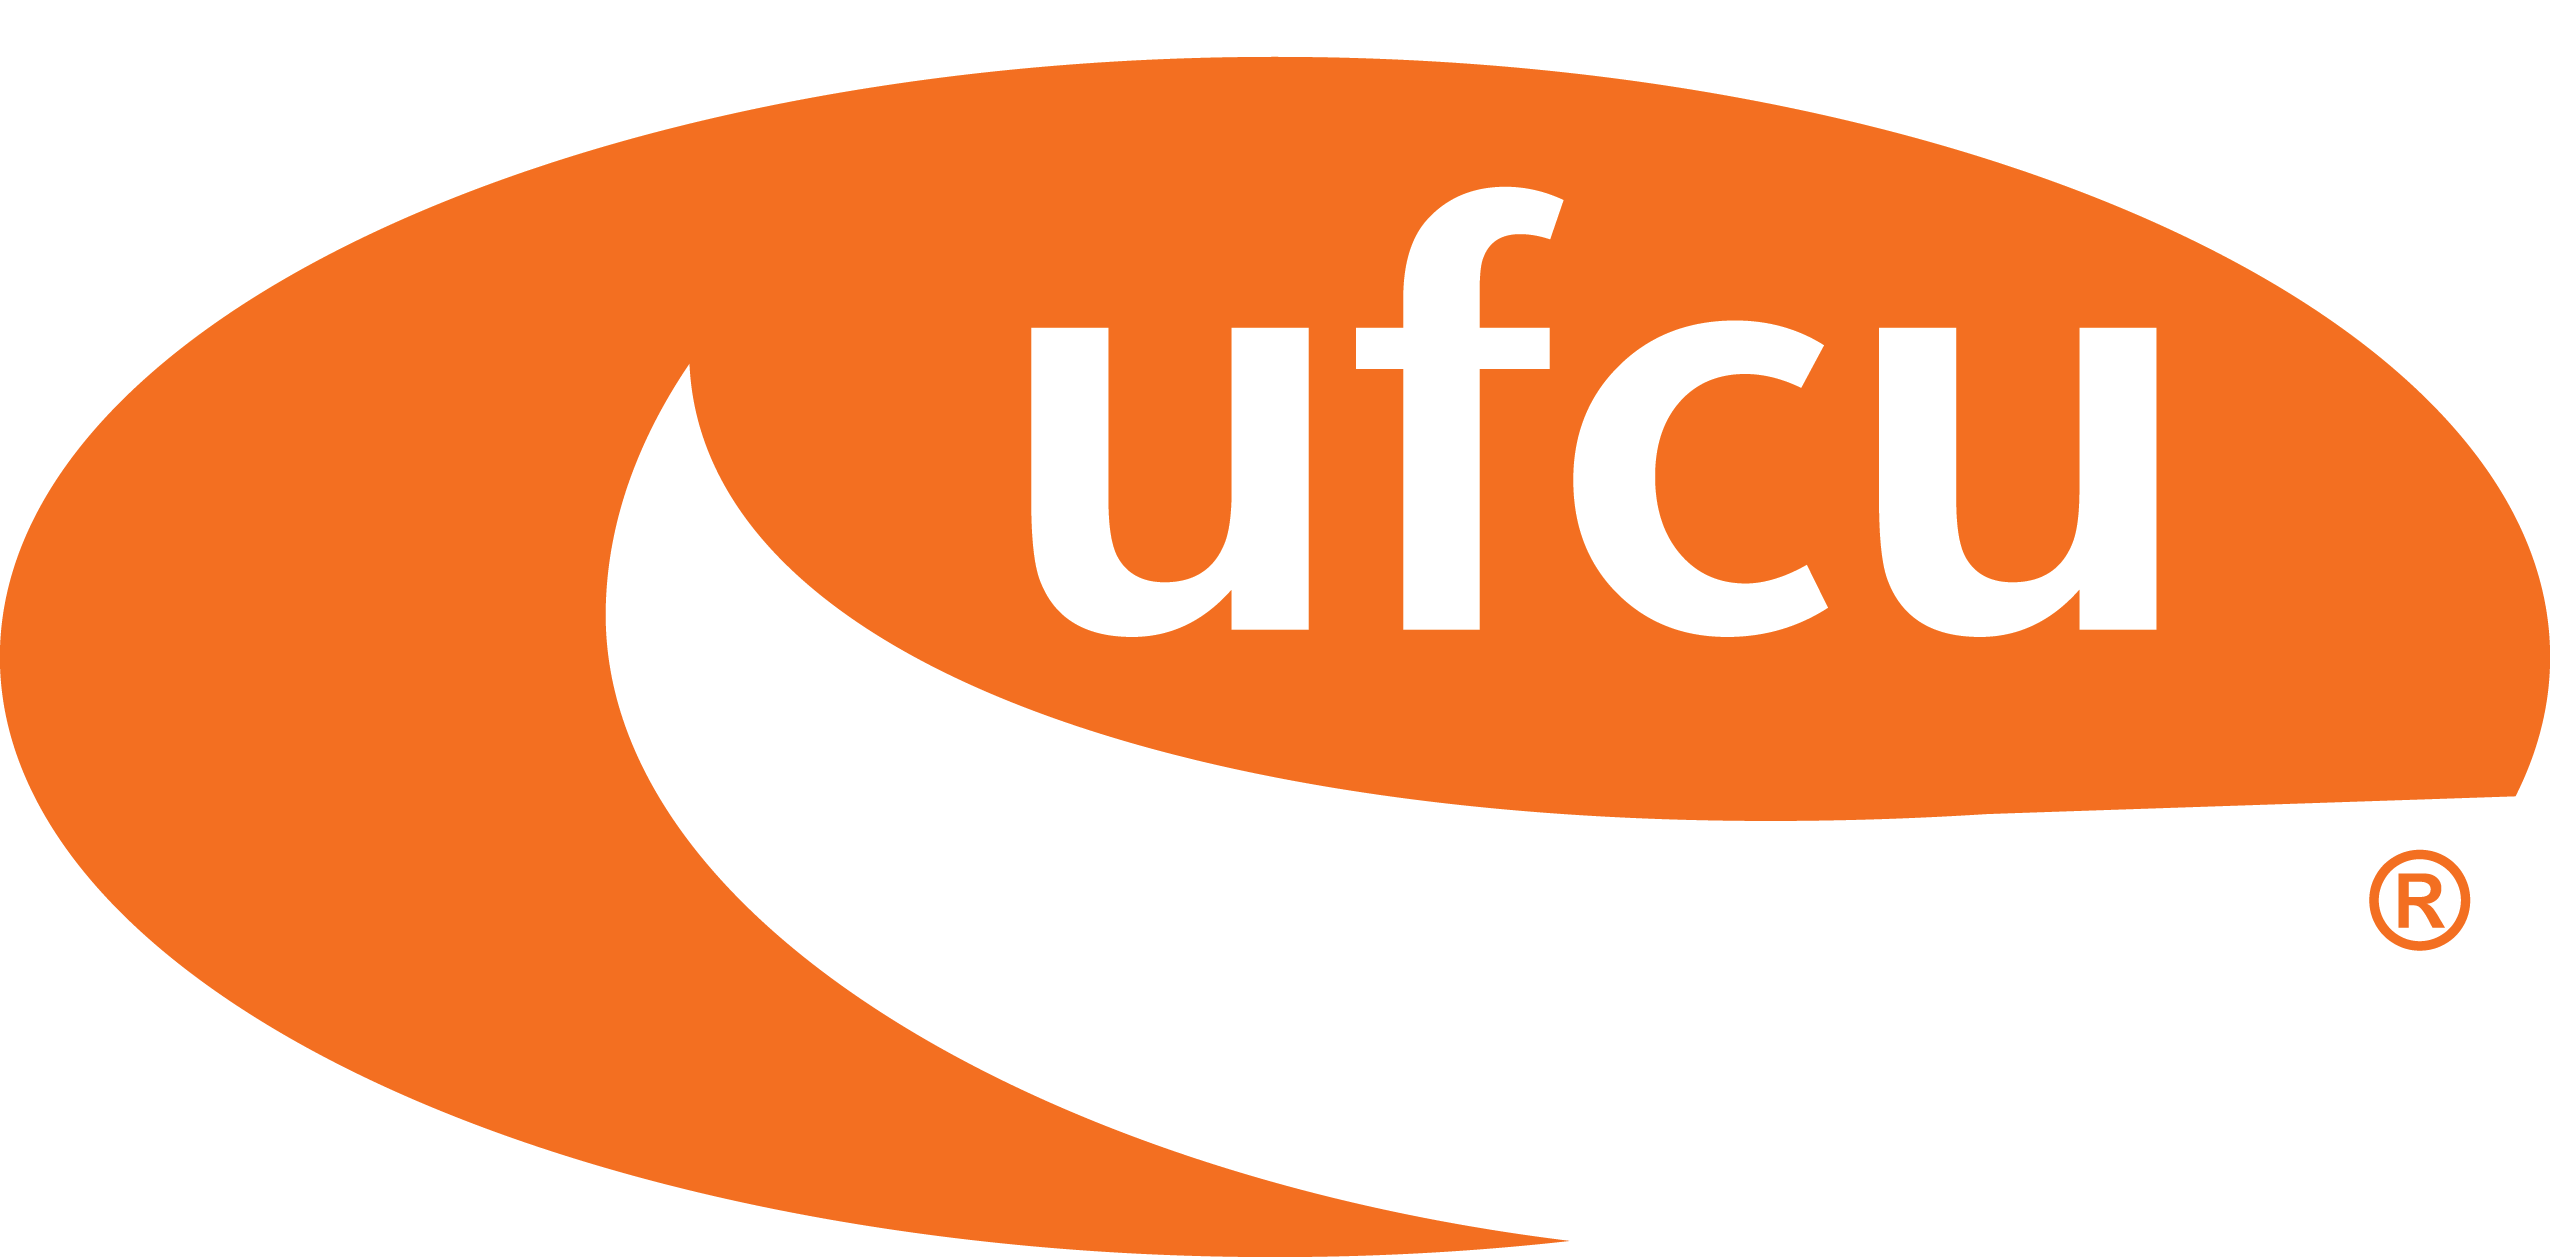 Best online betting sites for ufcu all ireland club hurling championship betting tips